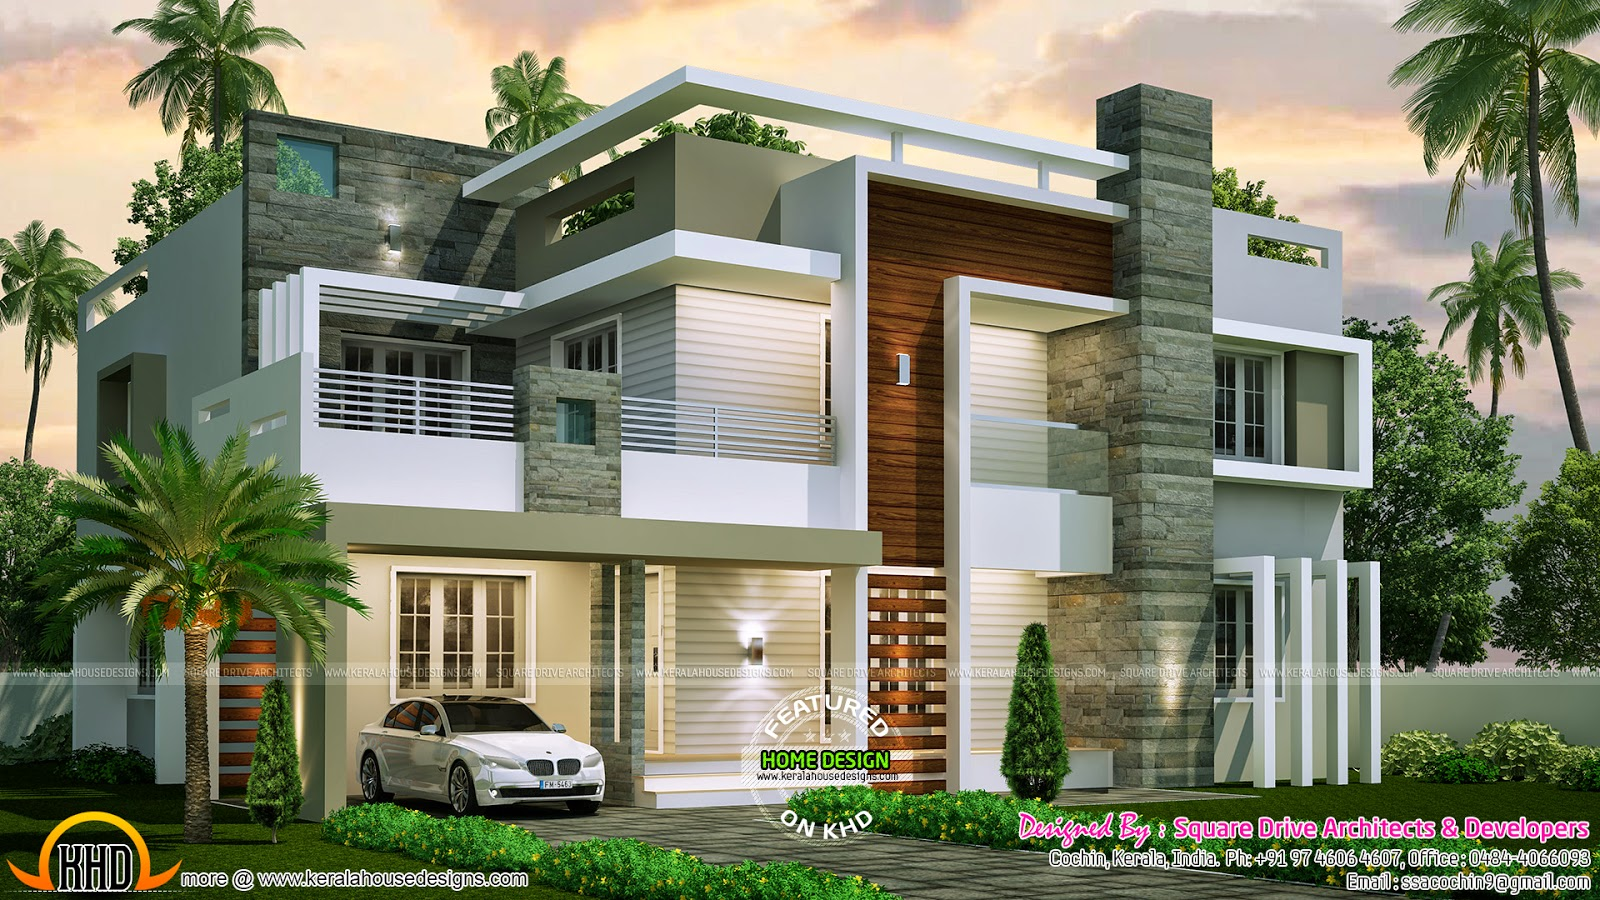 4 bedroom contemporary home design kerala home design for Good home designs in india